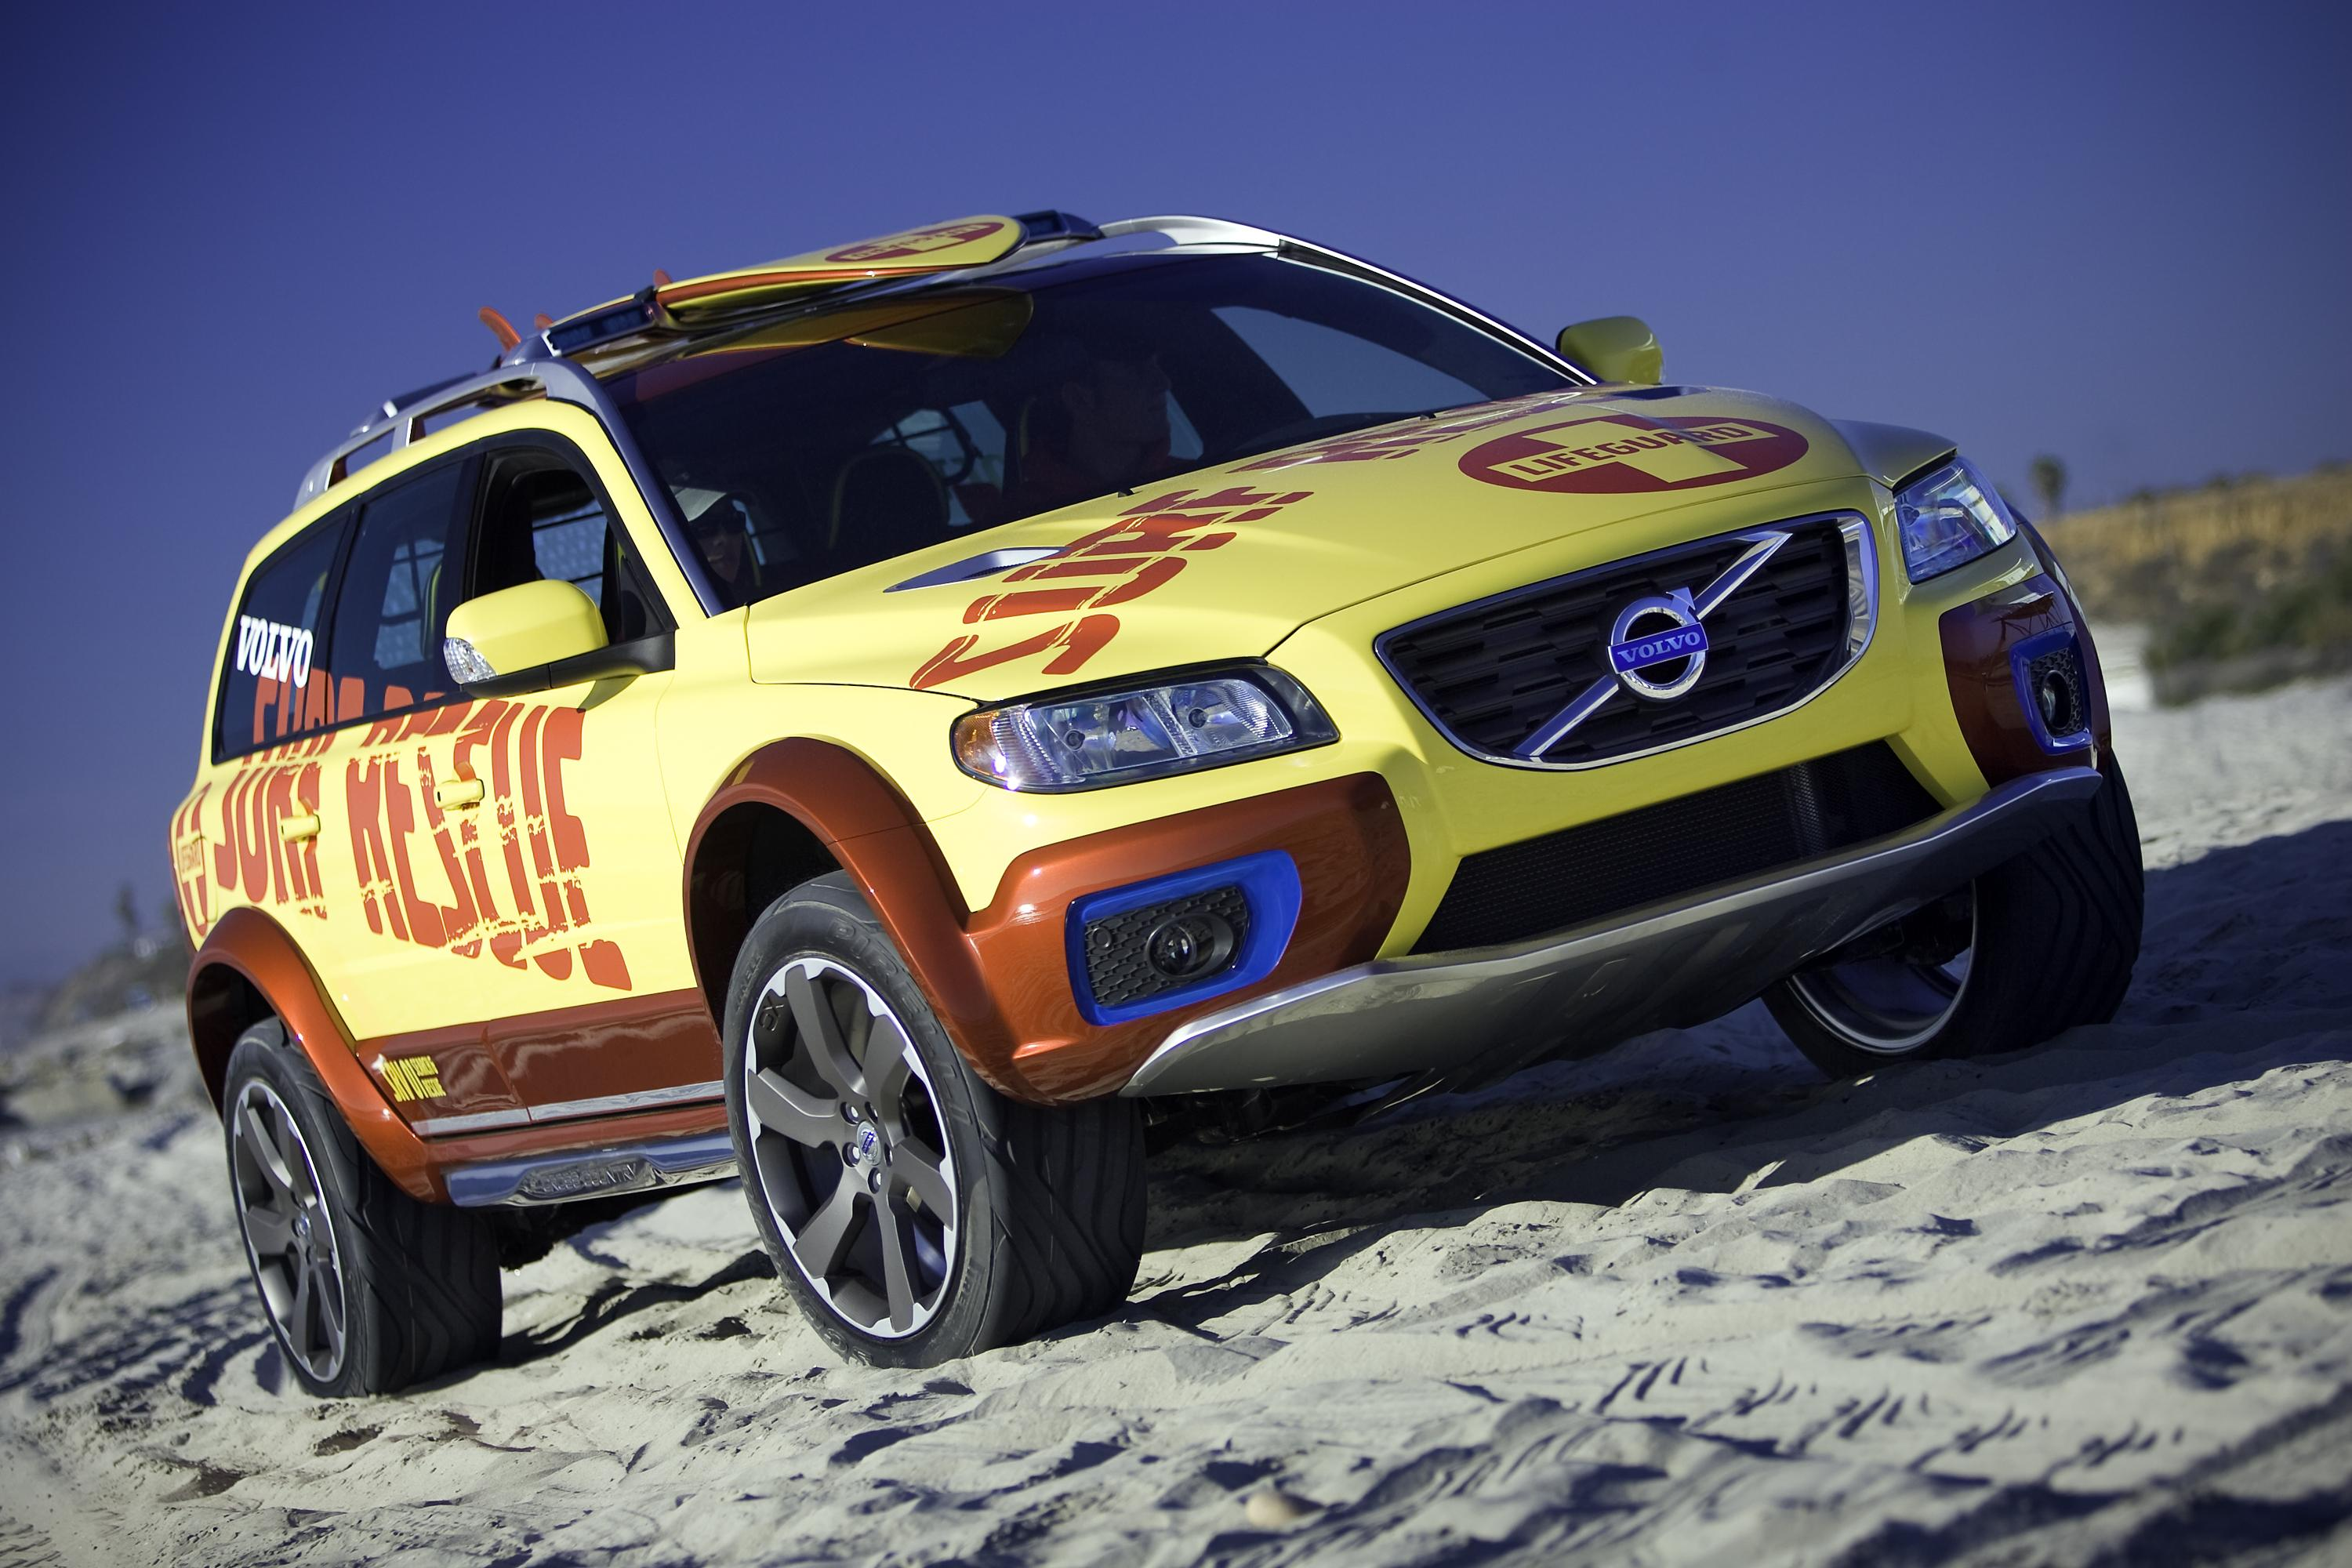 2007 Volvo XC70 Surf Rescue Review - Top Speed